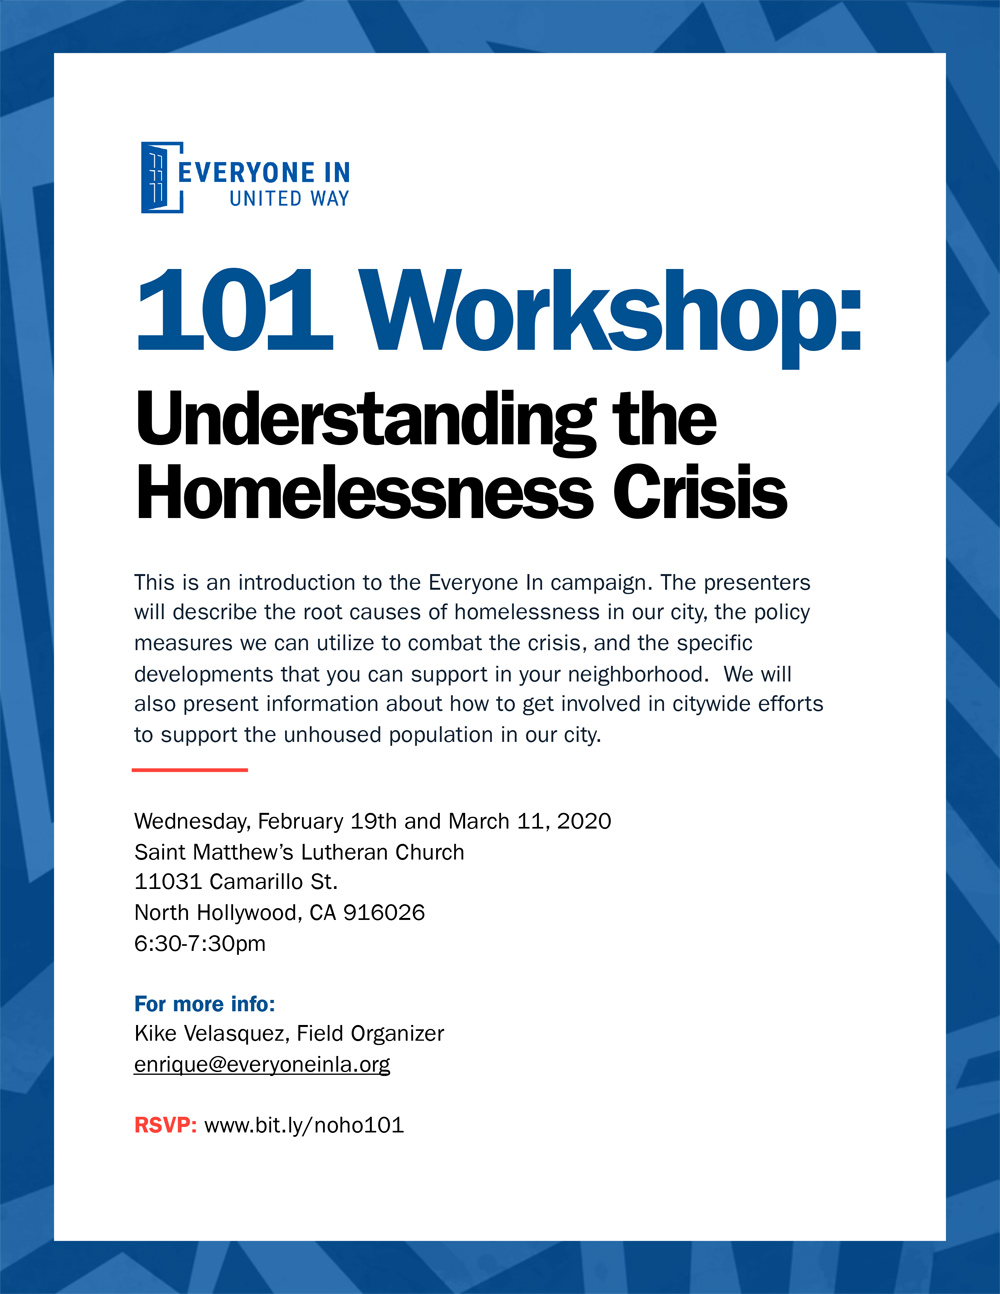 Understanding the Homeless Crisis Workshop